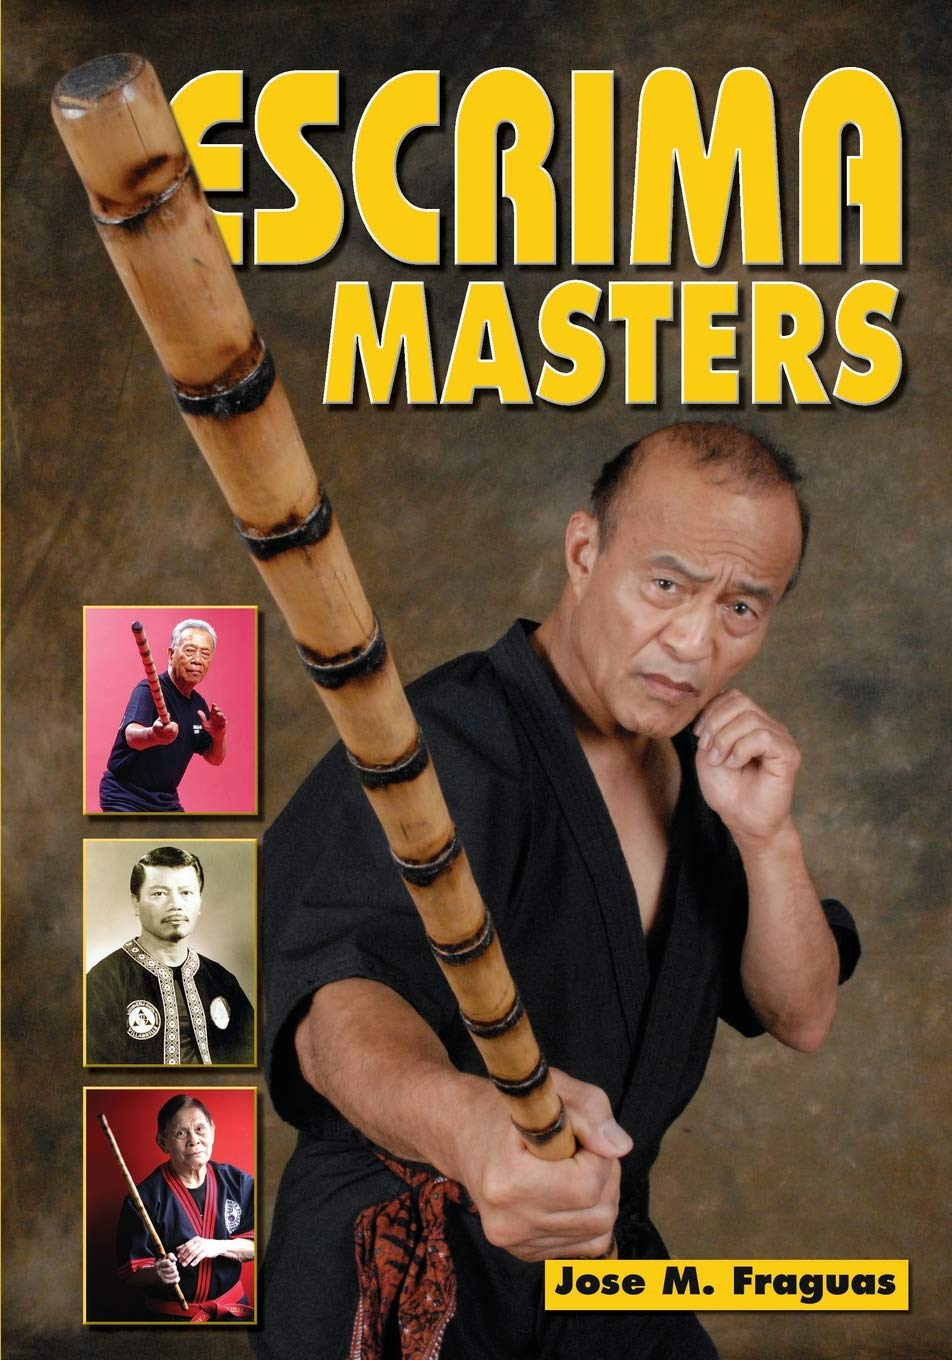 Escrima Masters: Jose M Fraguas: 9781949753059: Amazon com